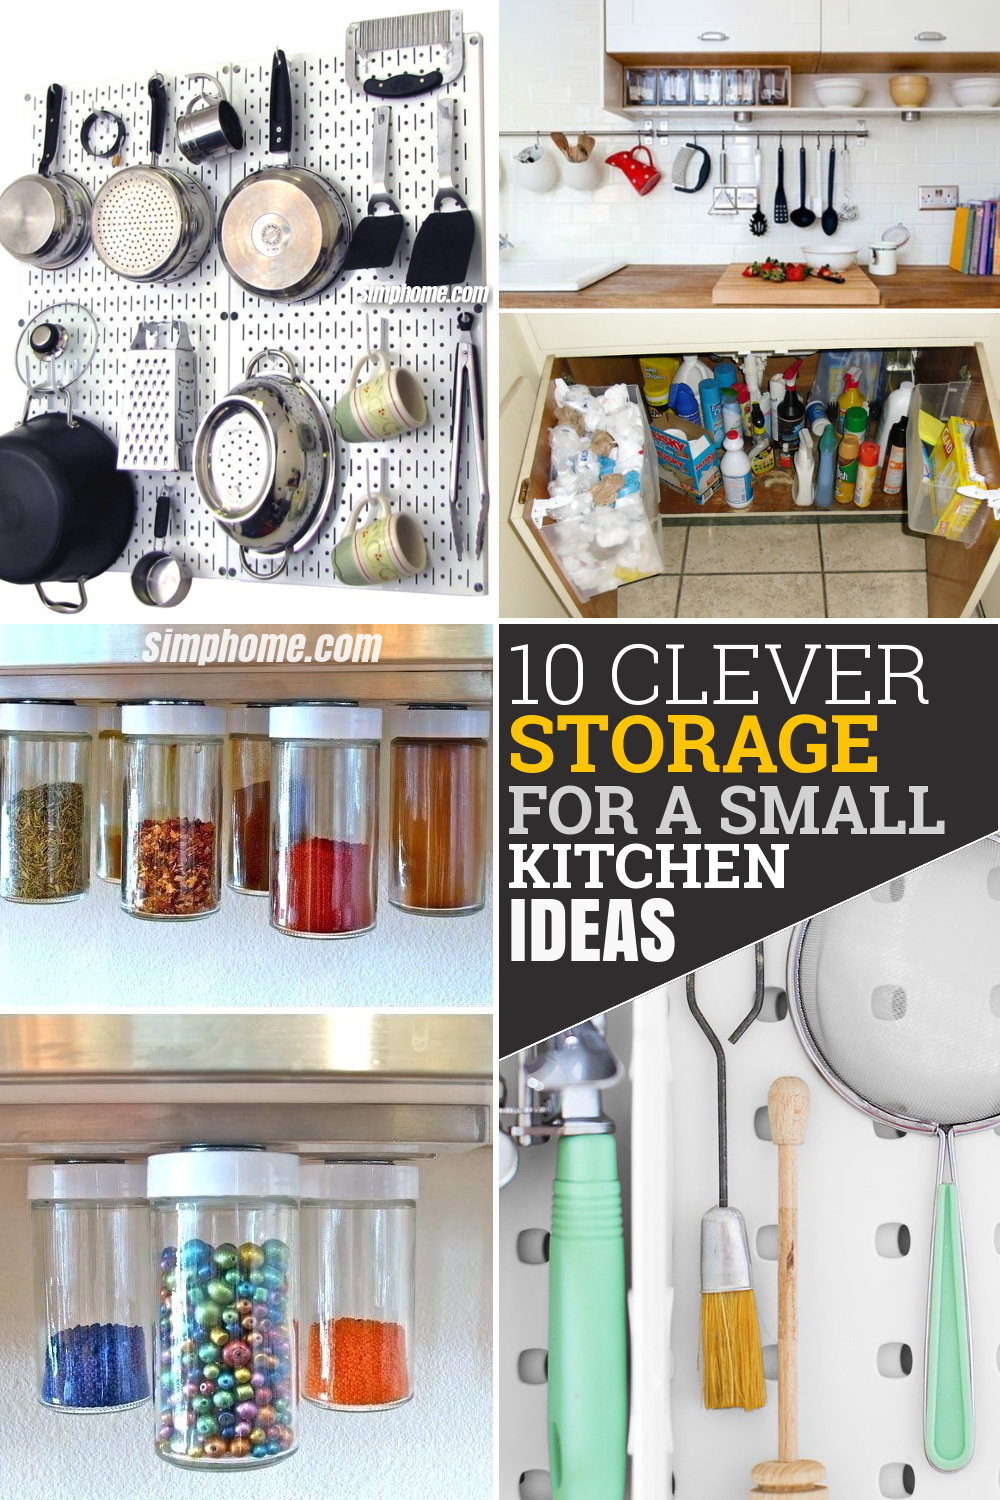 10 clever storage for a small kitchen idea via Simphome Pinterest image